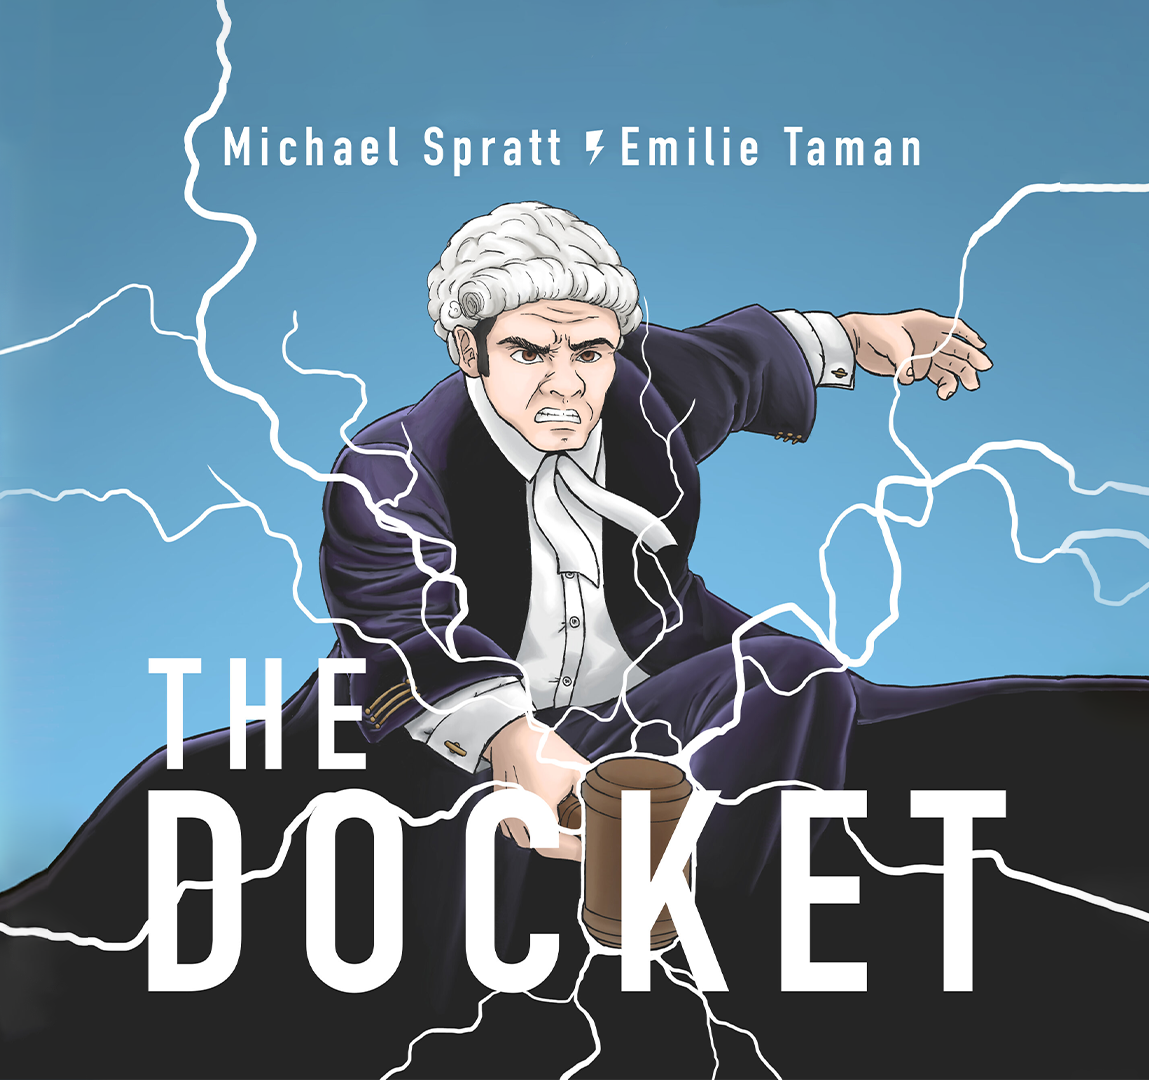 The Docket Podcast cover of cartoon judge hitting gavel and producing lightning sparks